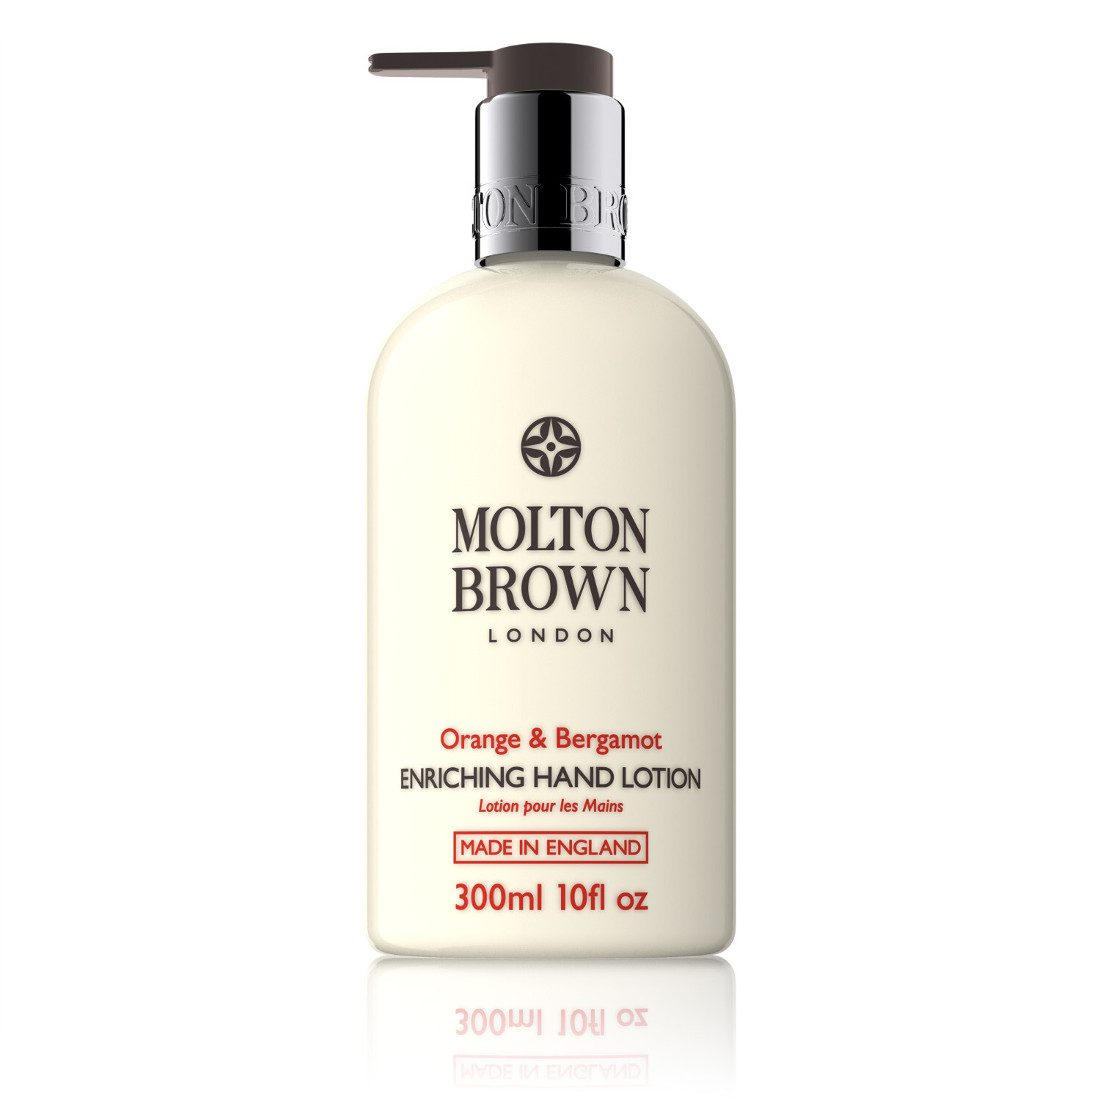 molton-brown-orange-bergamot-hand-lotion_kbt010_xl